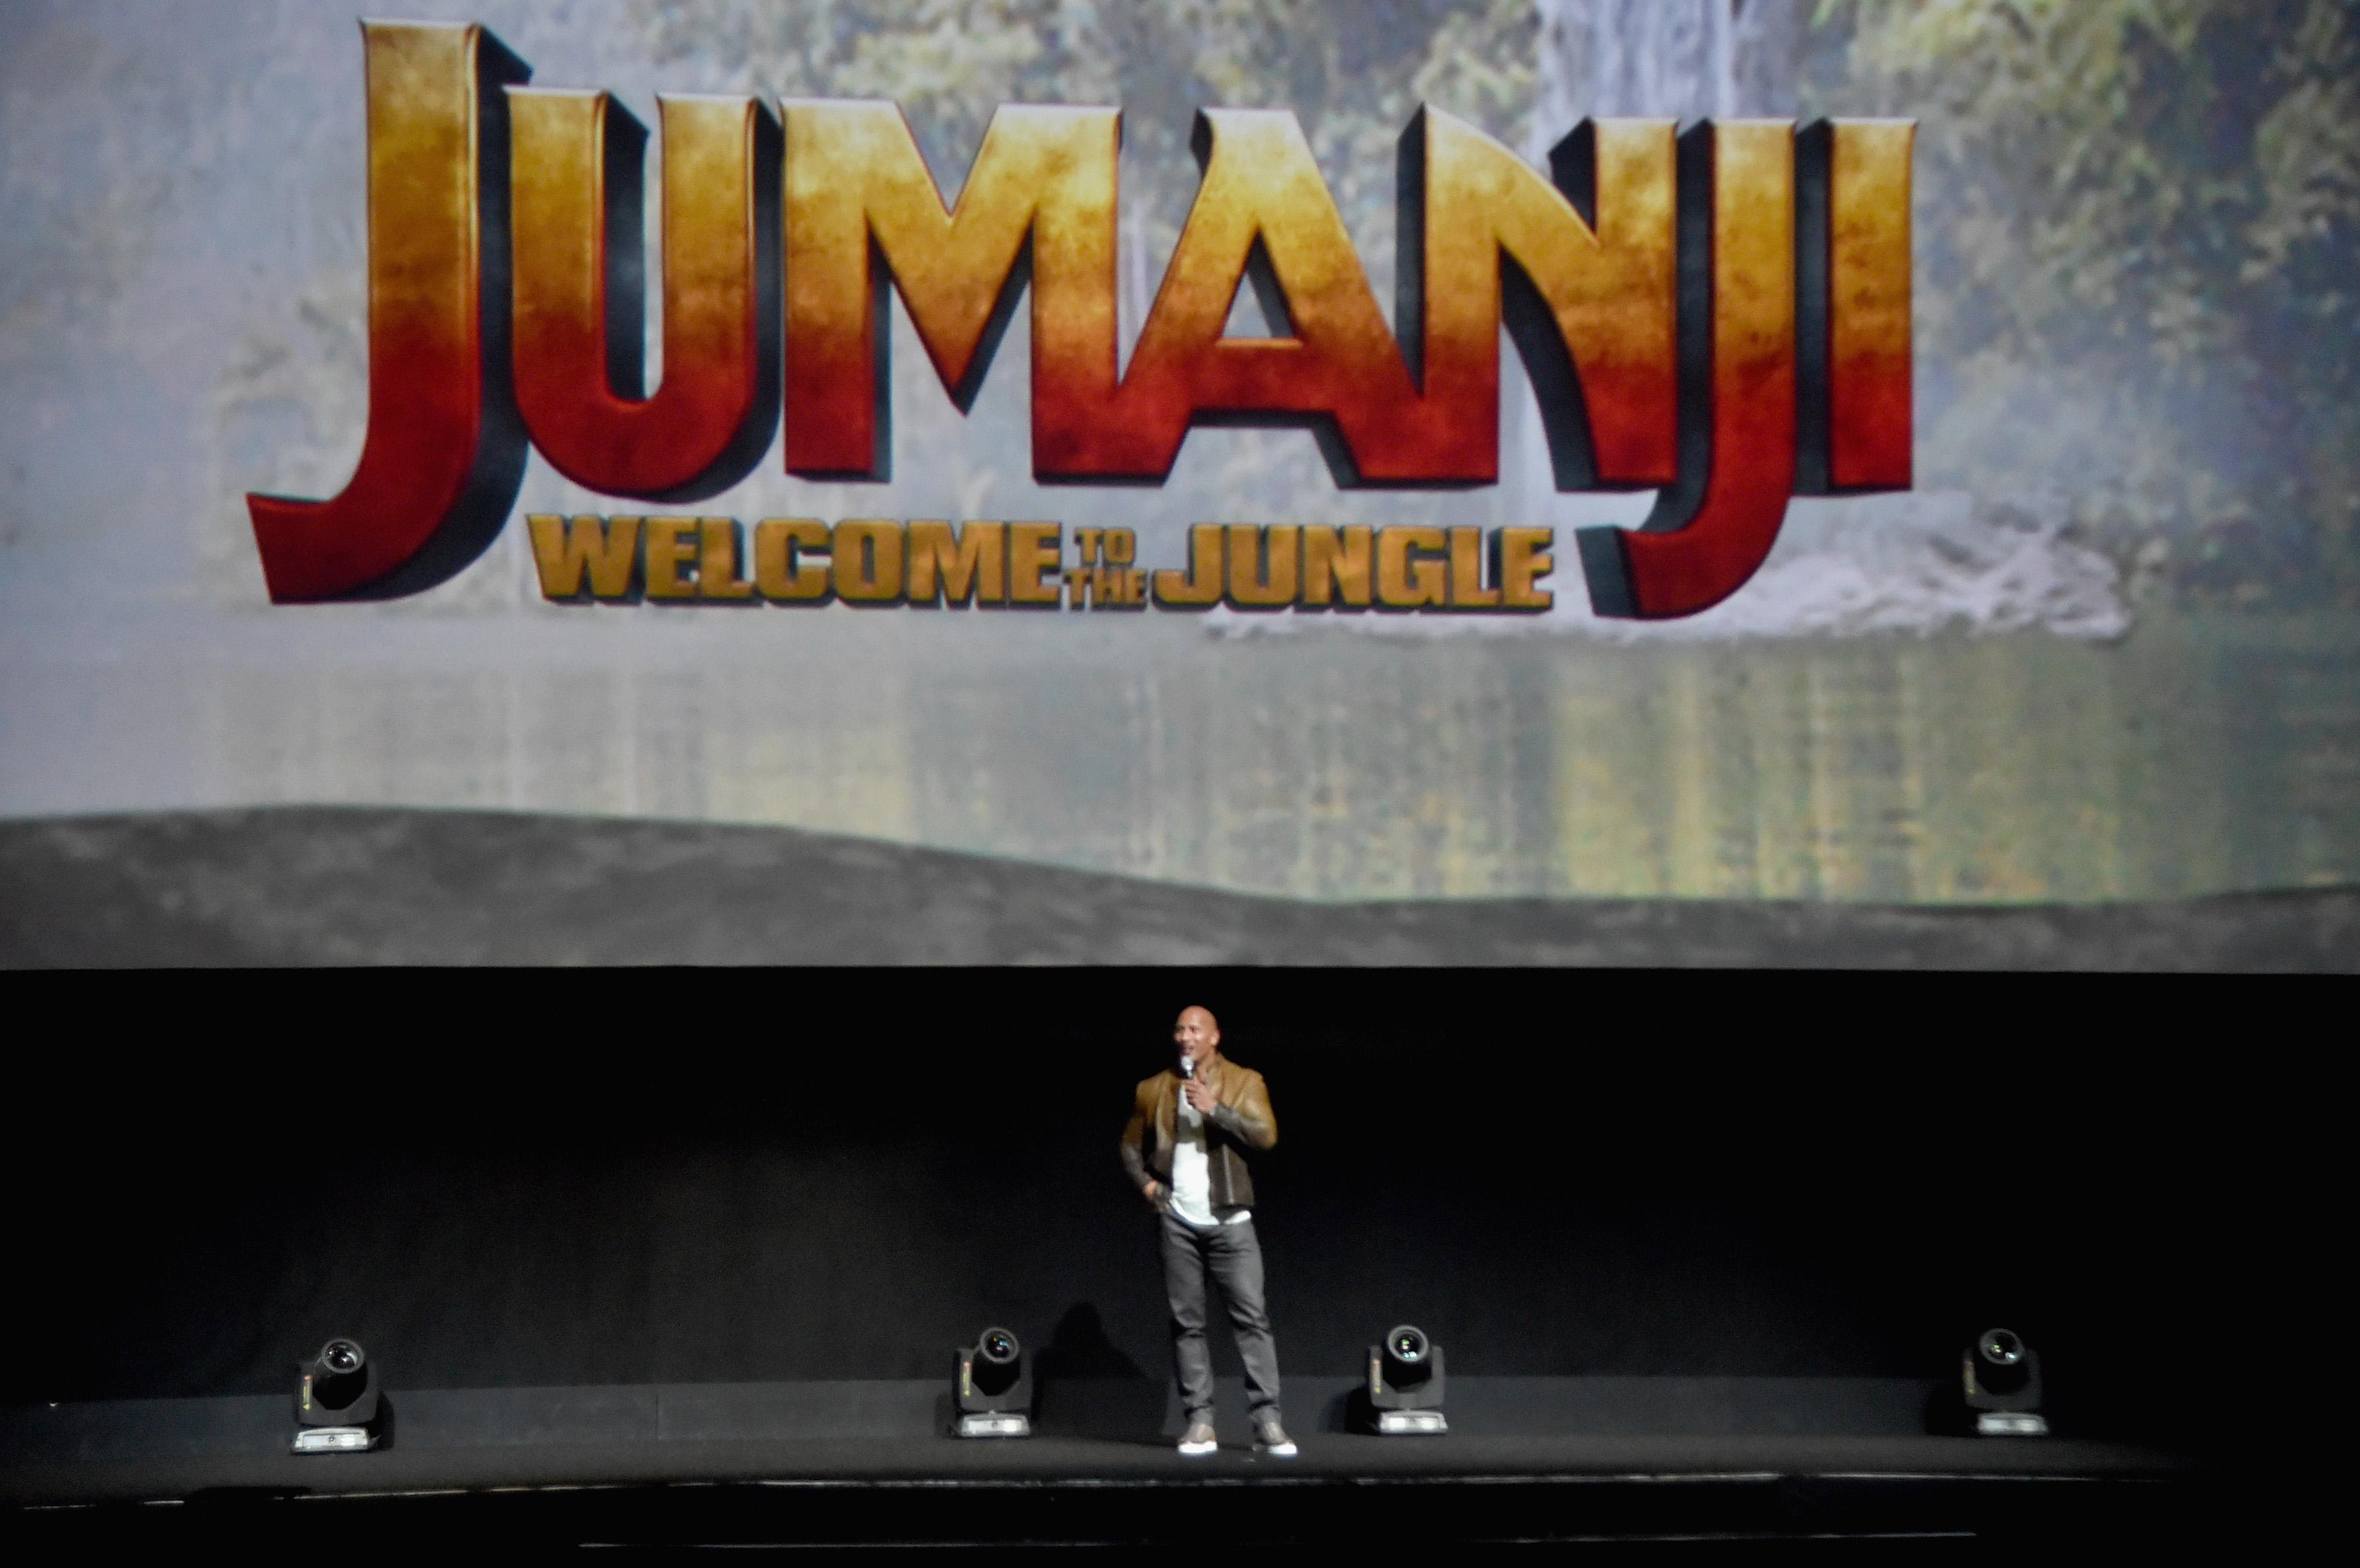 Jumanji: The Video Game' Is Ready To Transport You To